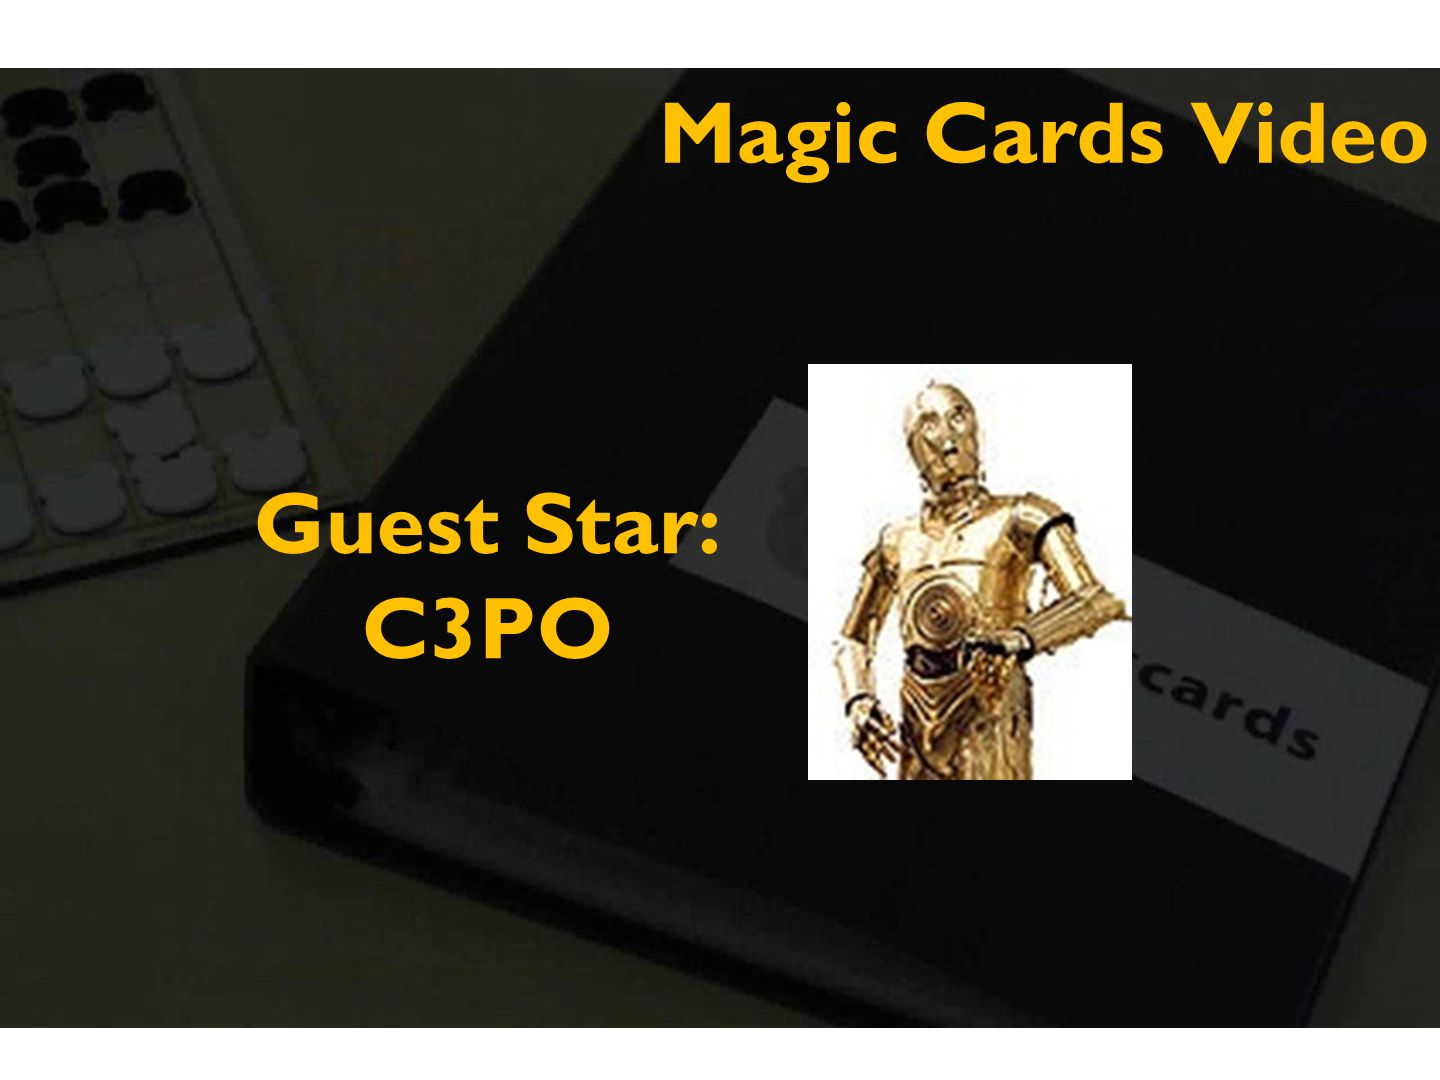 Magic Cards Video Guest Star: C3PO